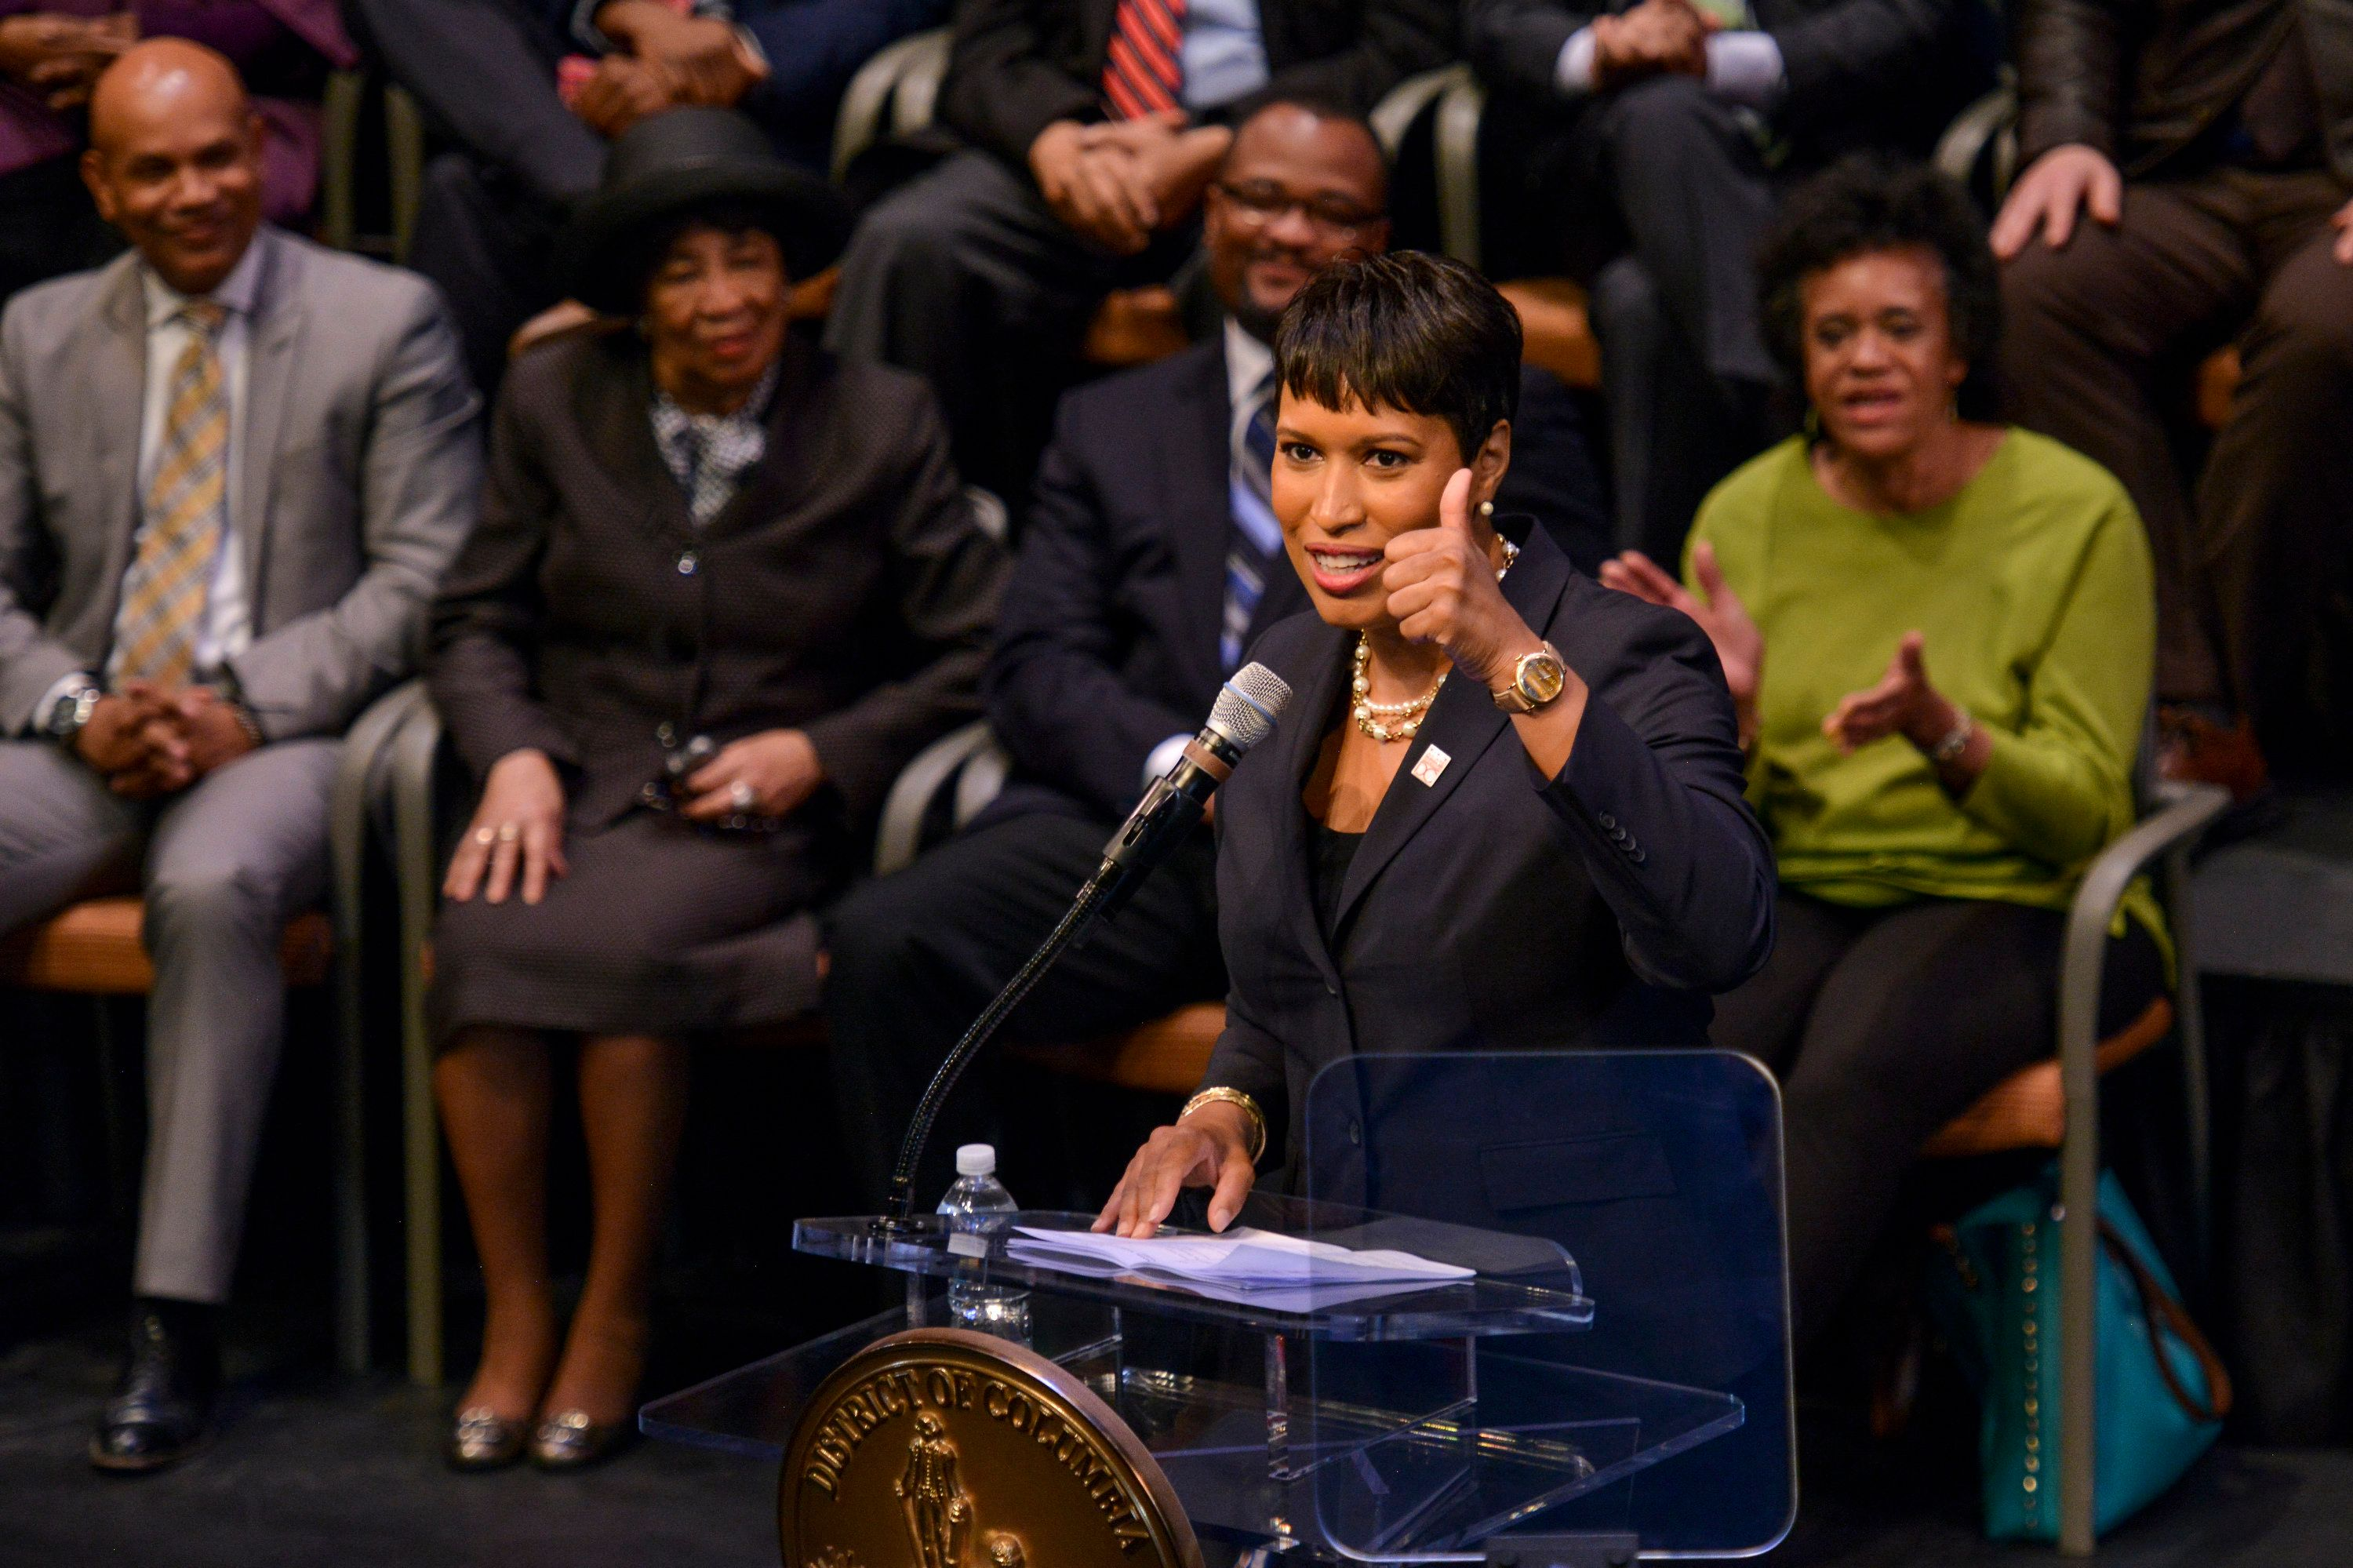 WASHINGTON, DC   MARCH 22: D.C. Mayor Muriel Bowser delivers the 2016 State of the District Address at the Arena Stage on Tuesday, March 22, 2016, in Washington, DC.   (Photo by Jahi Chikwendiu/The Washington Post via Getty Images)